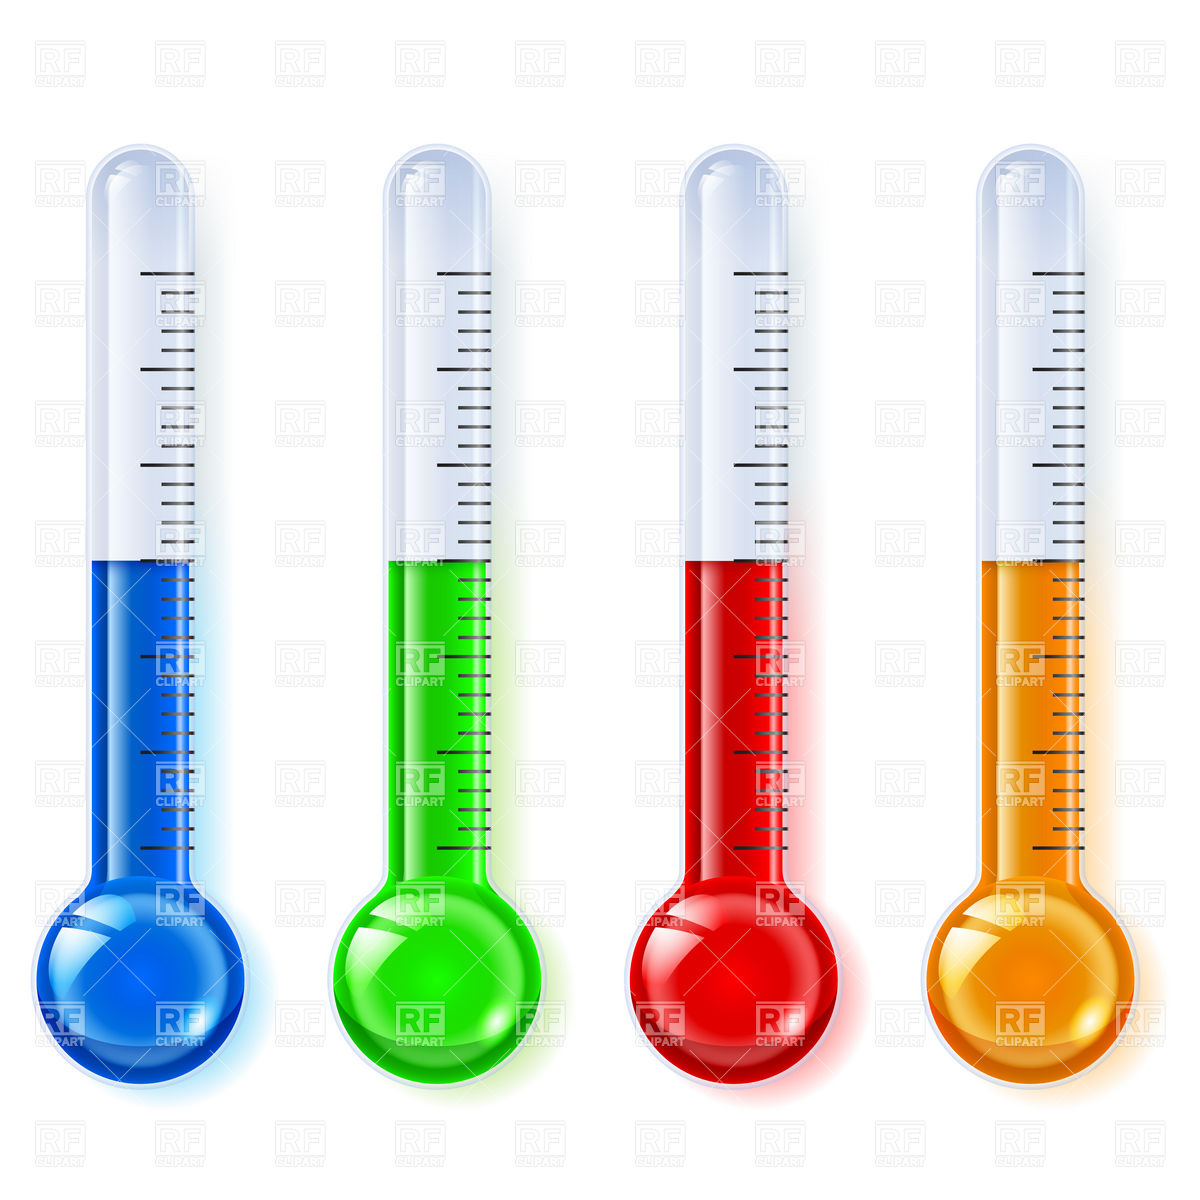 Cold Weather Thermometer Clip Art.